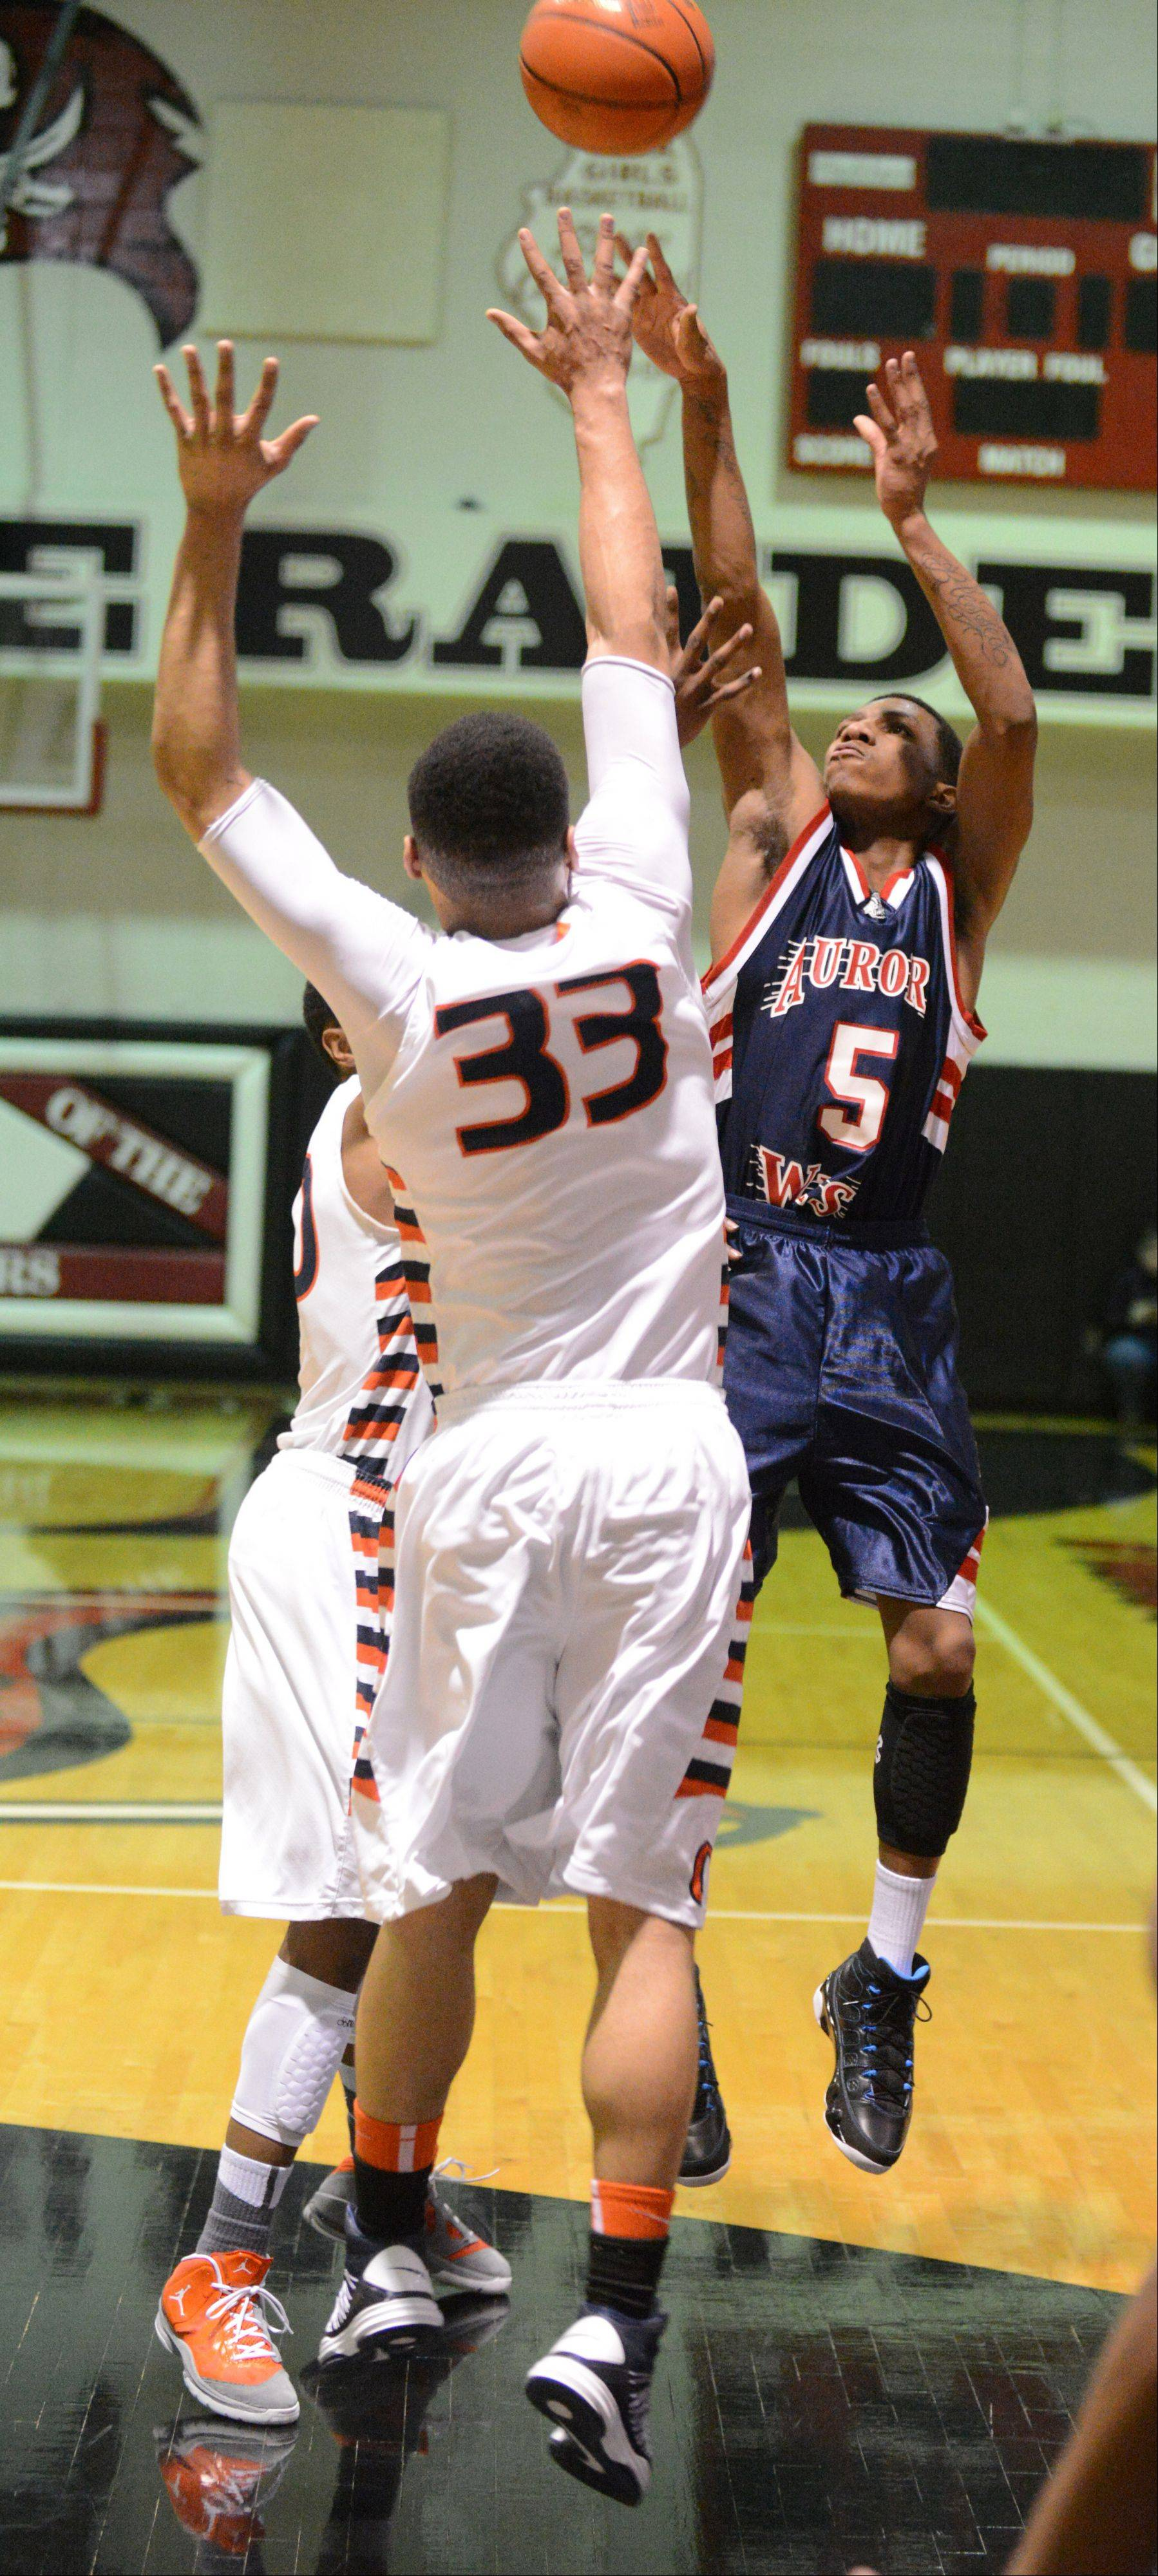 Jayquan Lee of West Aurora takes a three-point shot.